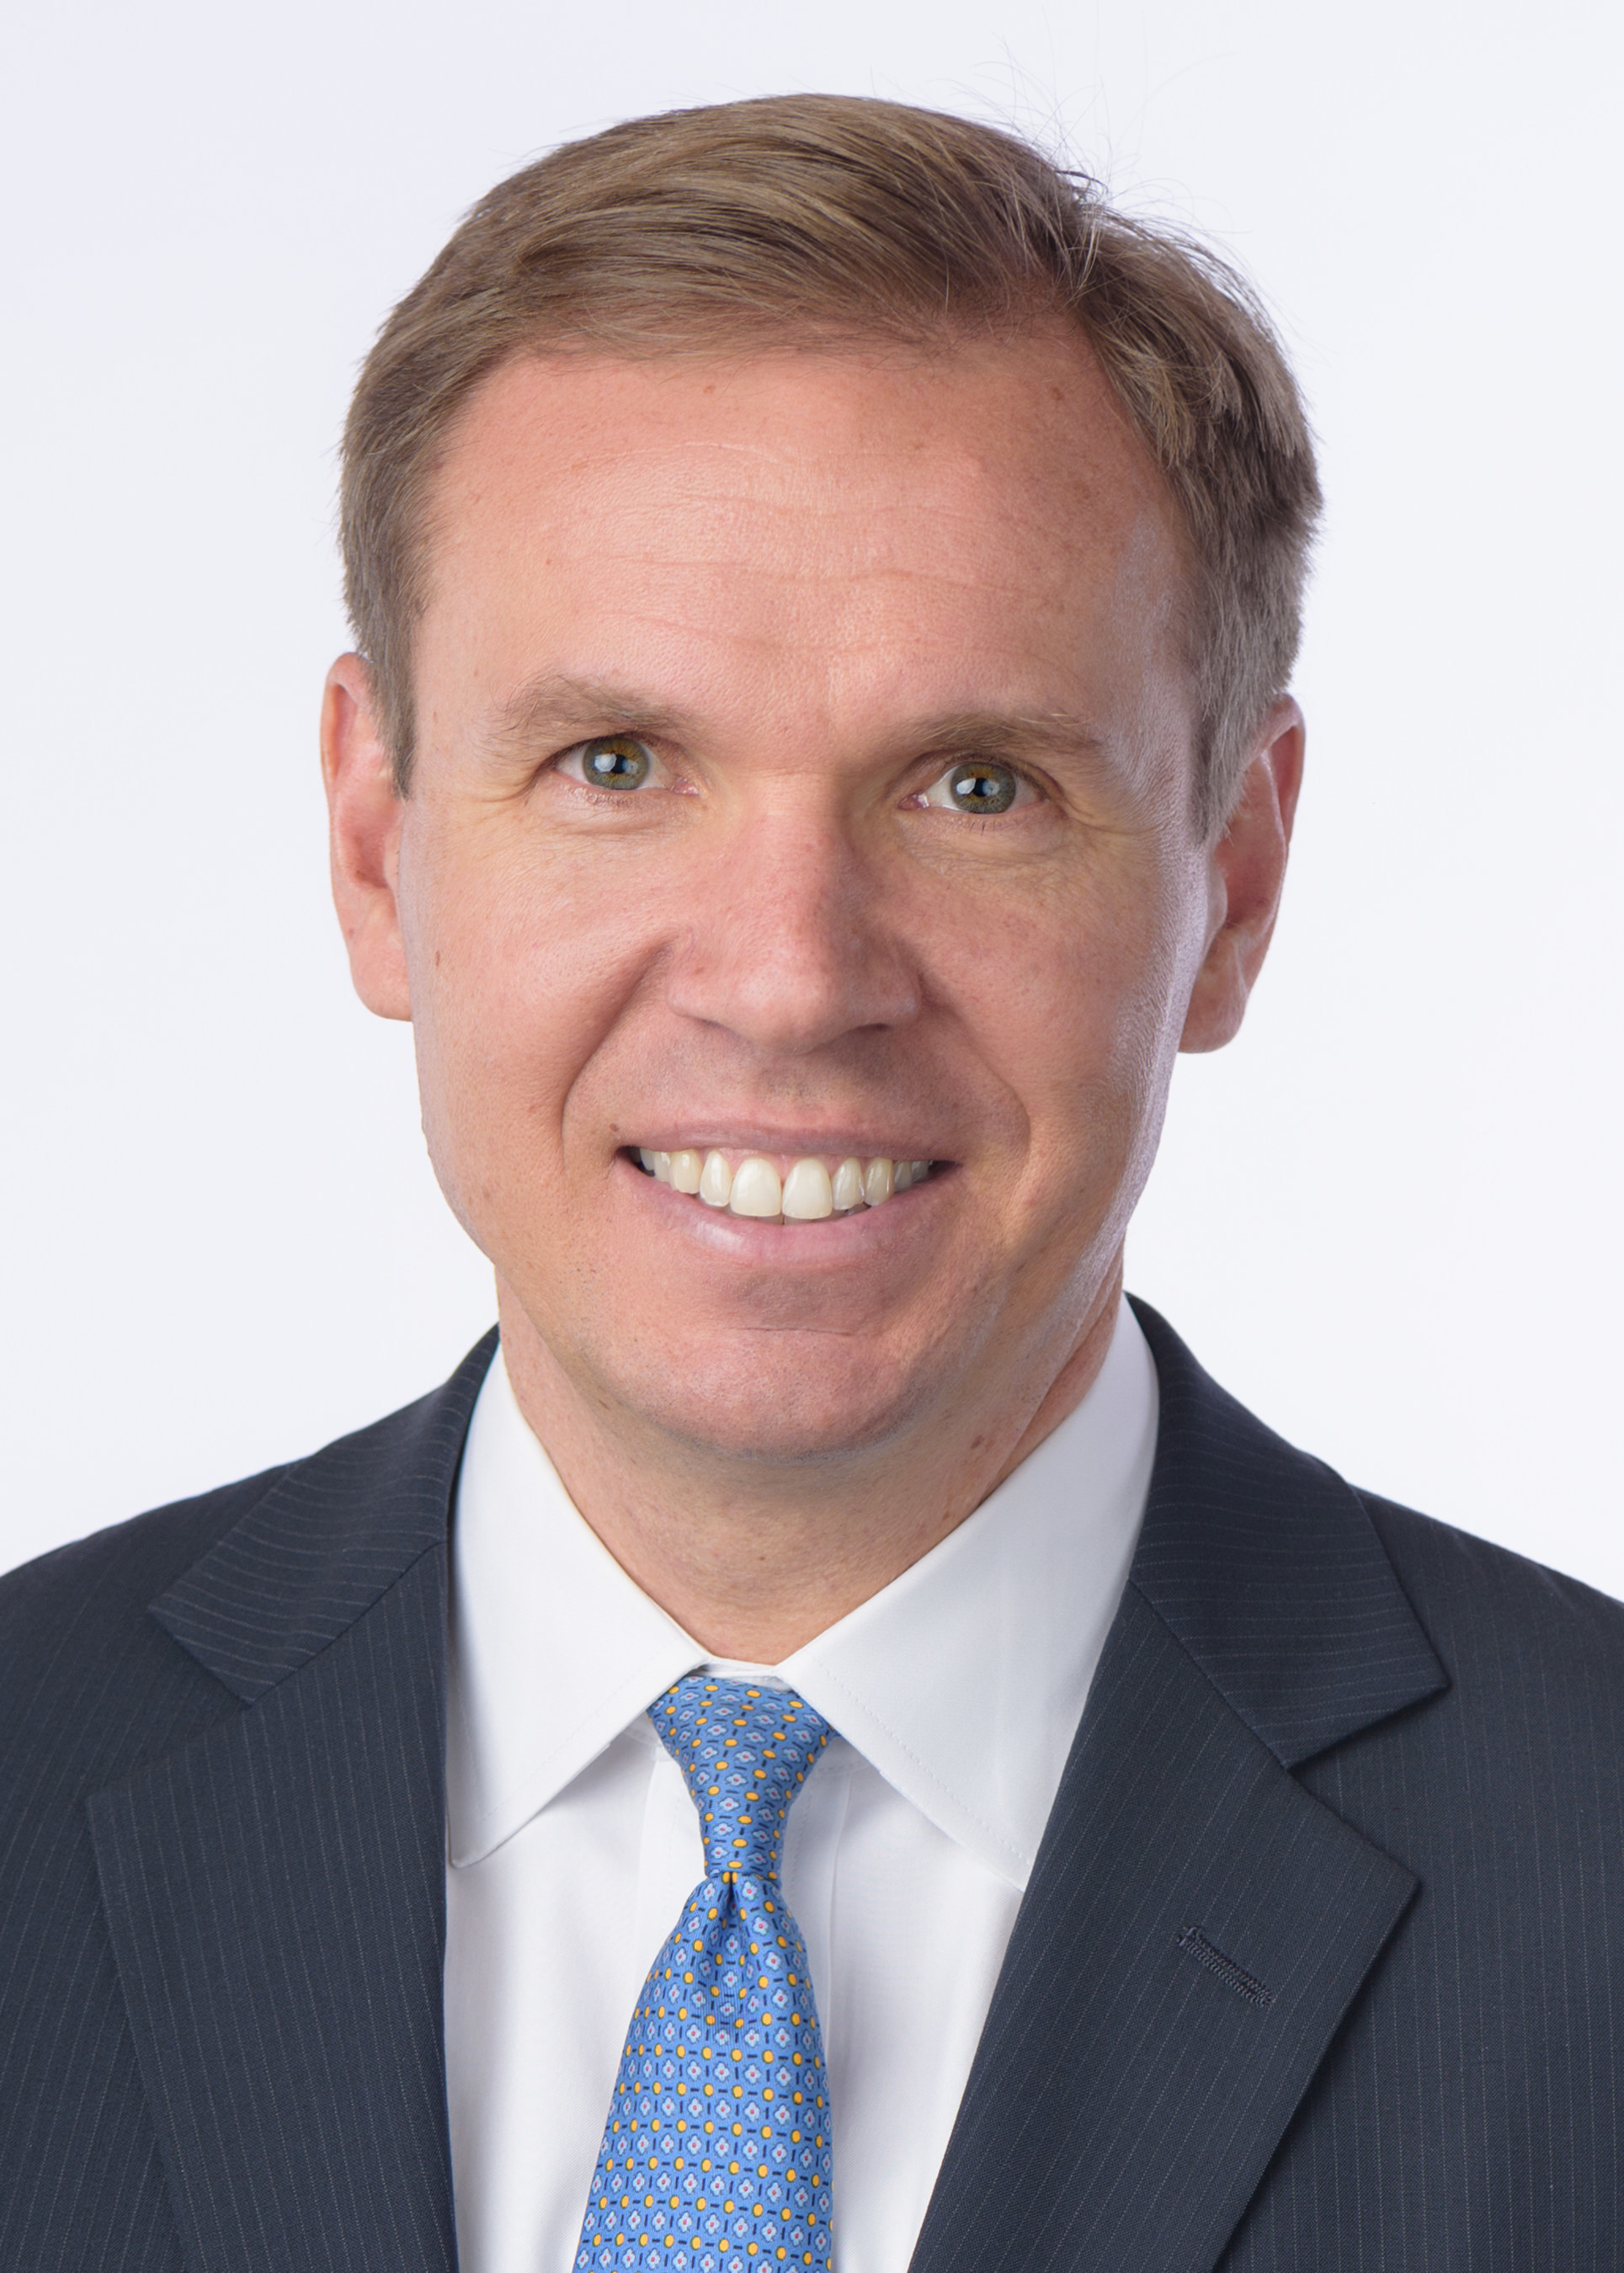 Paul Huntsman, CEO and President of Huntsman Family Investments